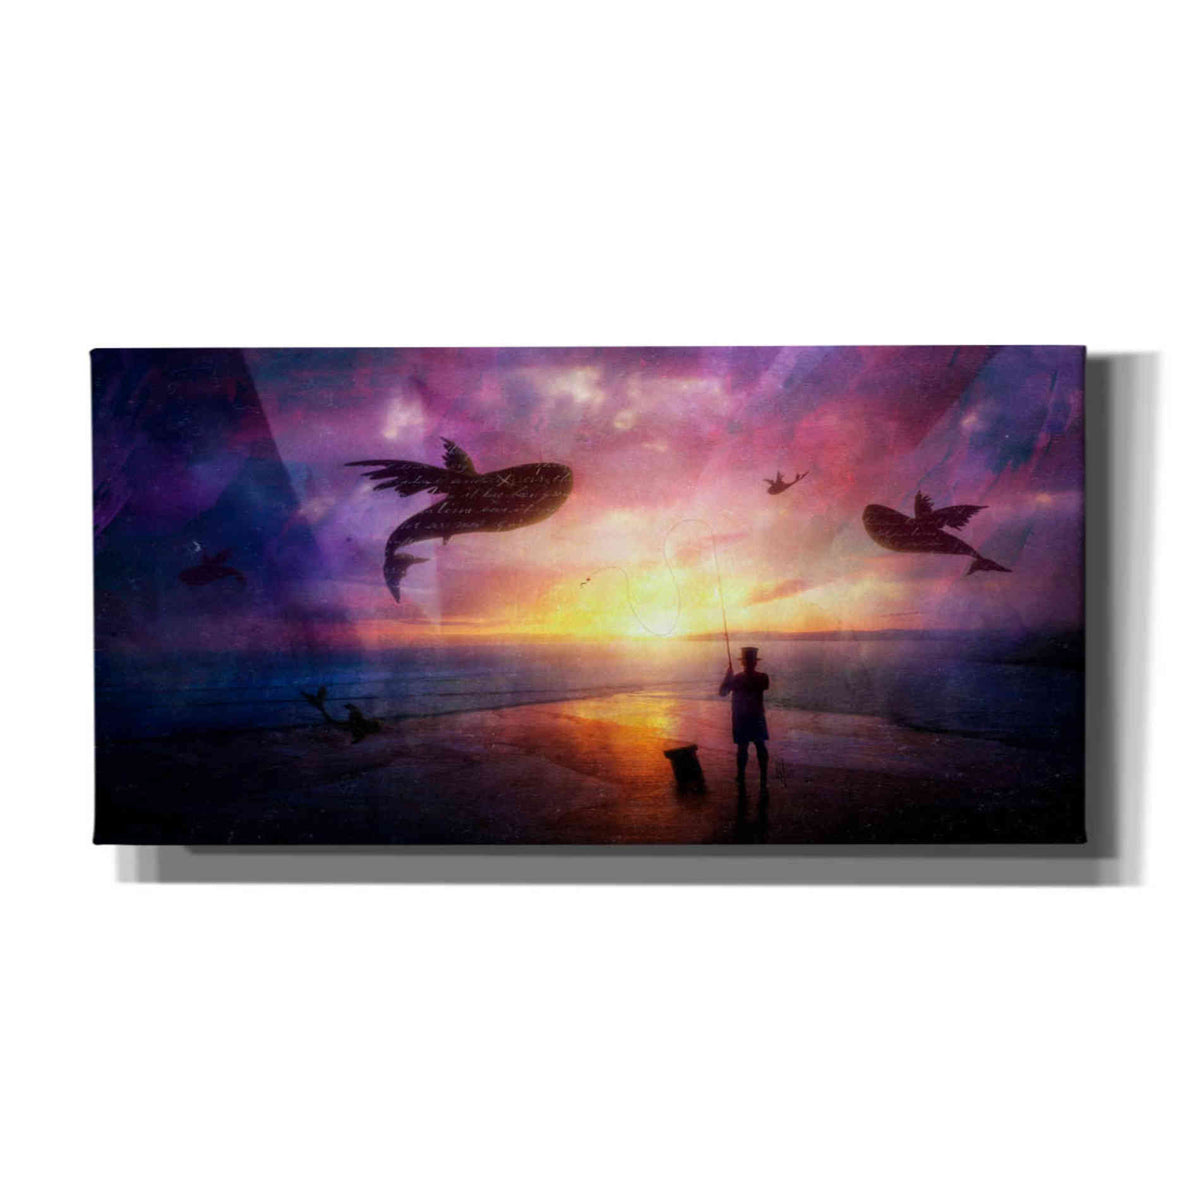 Cortesi Home 'The Answer' by Mario Sanchez Nevado, Canvas Wall Art,Size 2 Landscape